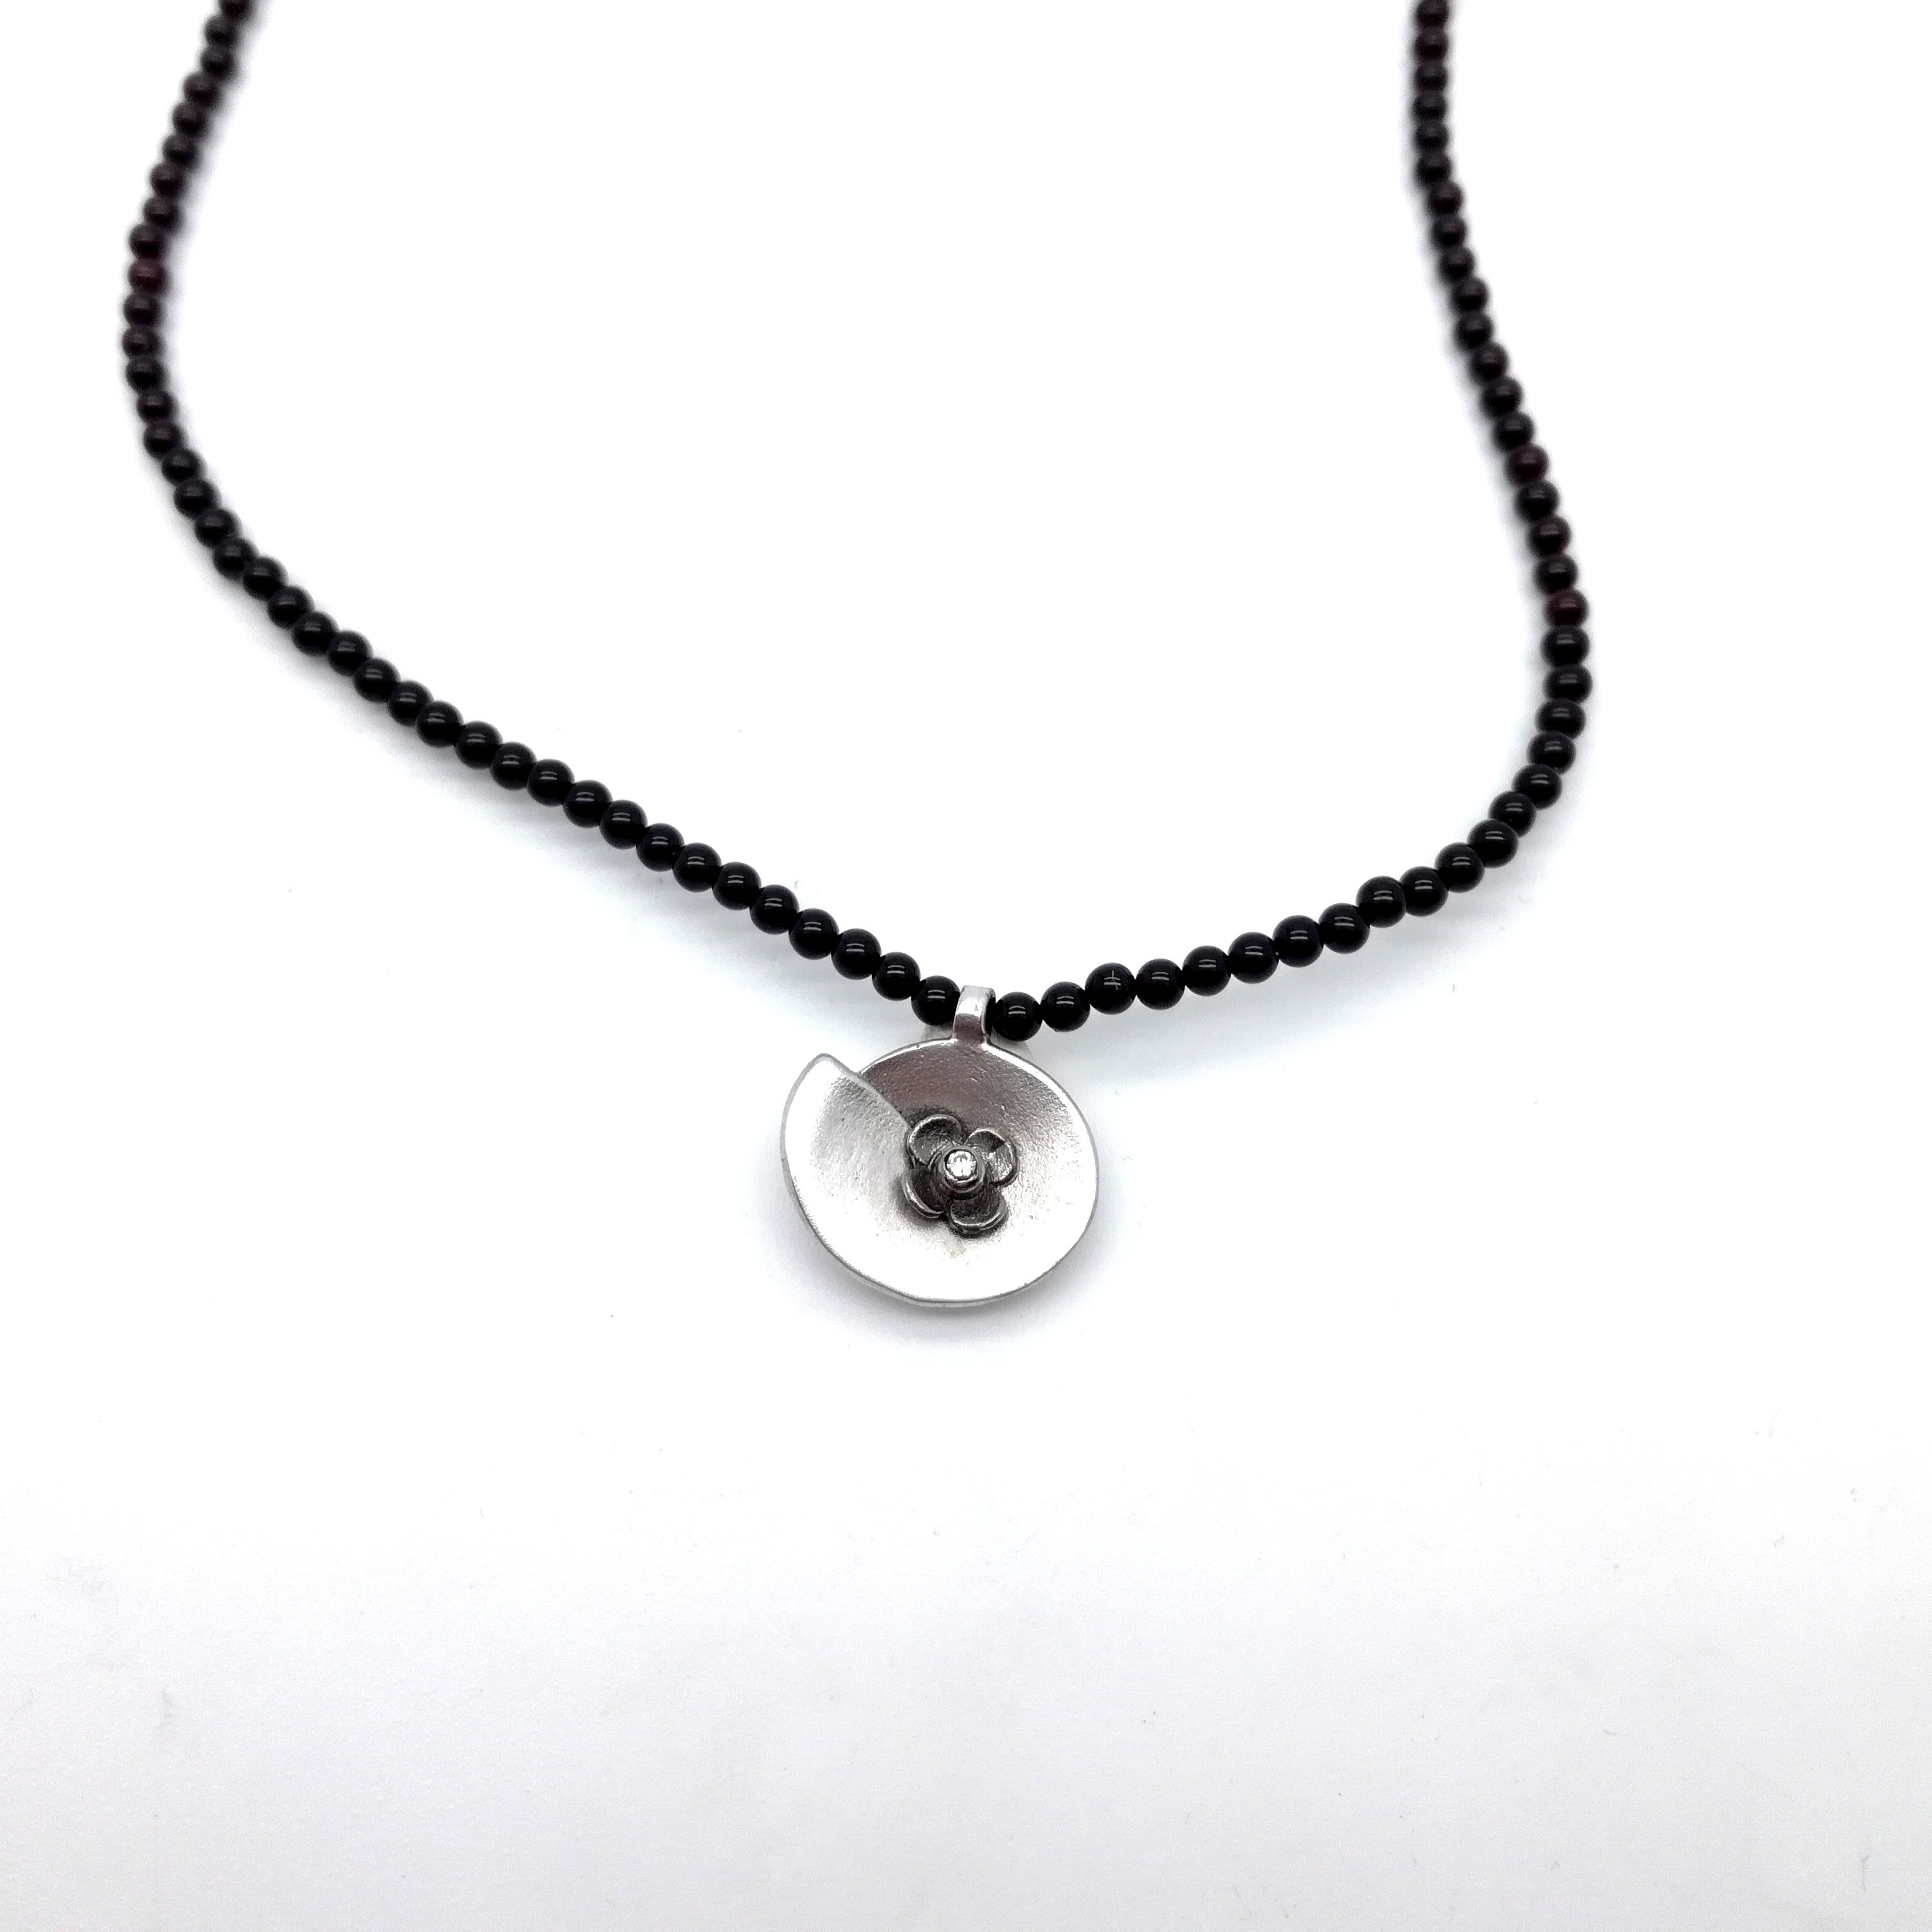 Silver necklace 925 black rhodium and rhodium plated with synthetic stones